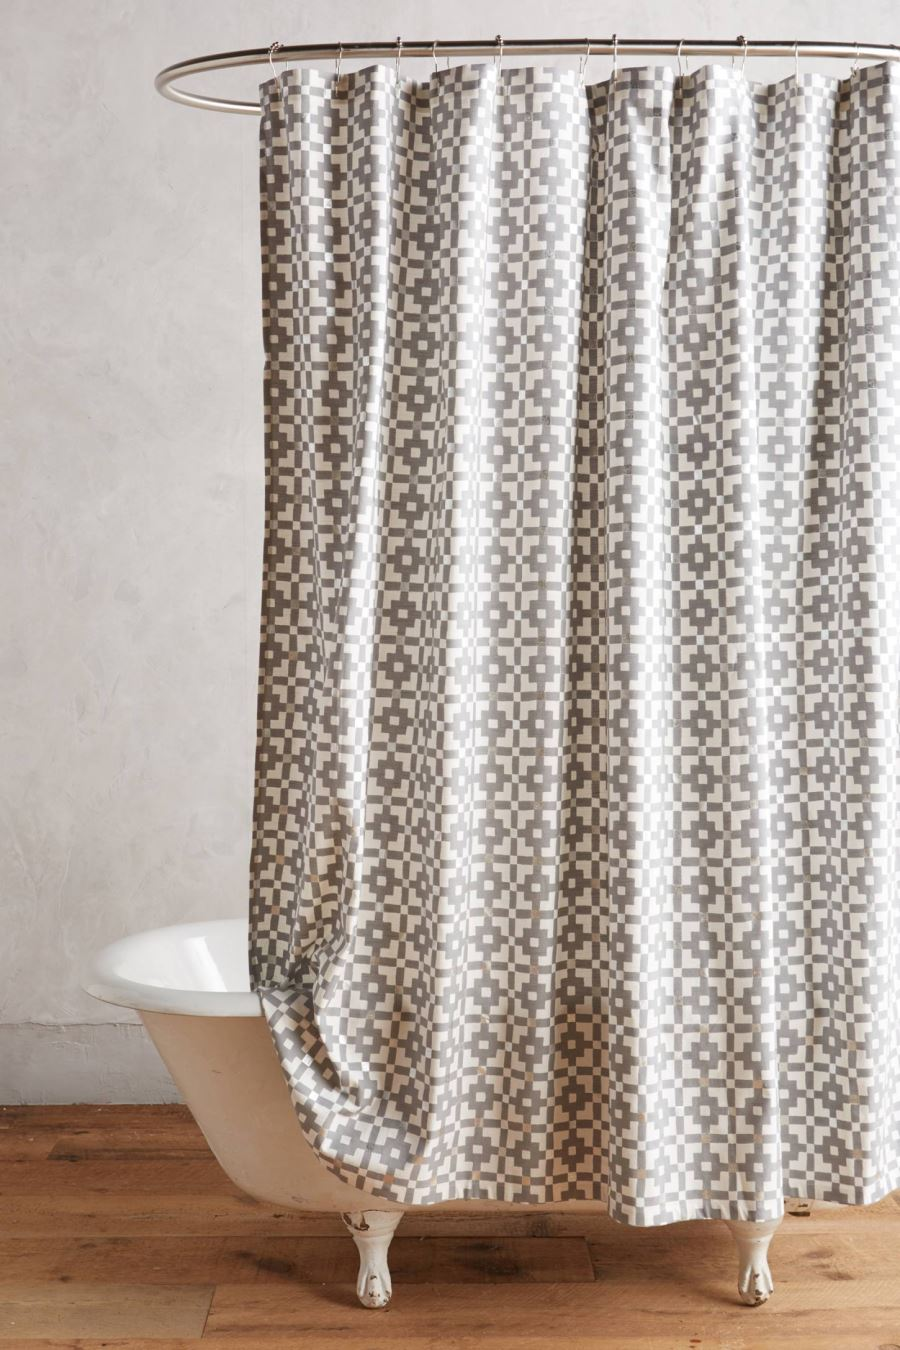 Geo shower curtain from Anthropologie